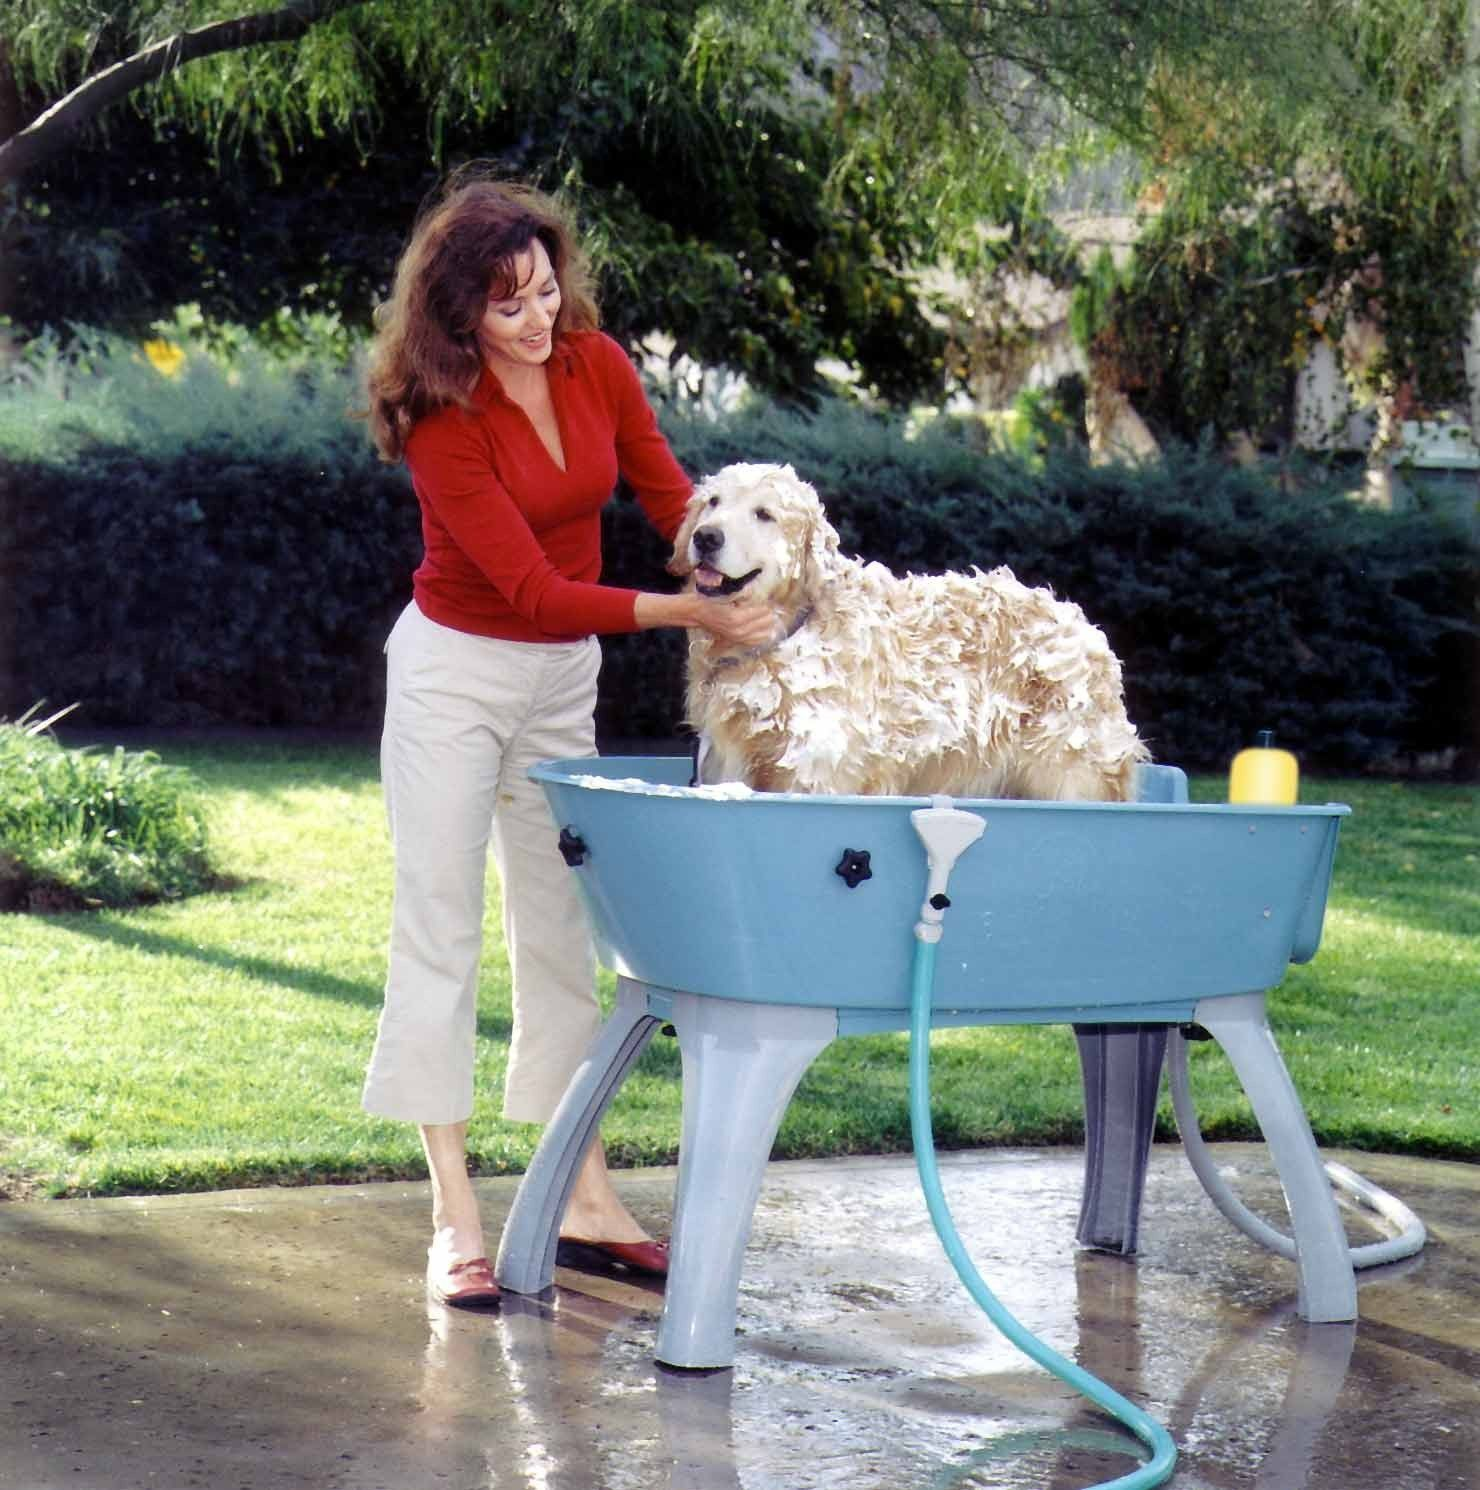 Booster Bath Bathing System For Dogs Has The Three Most Important